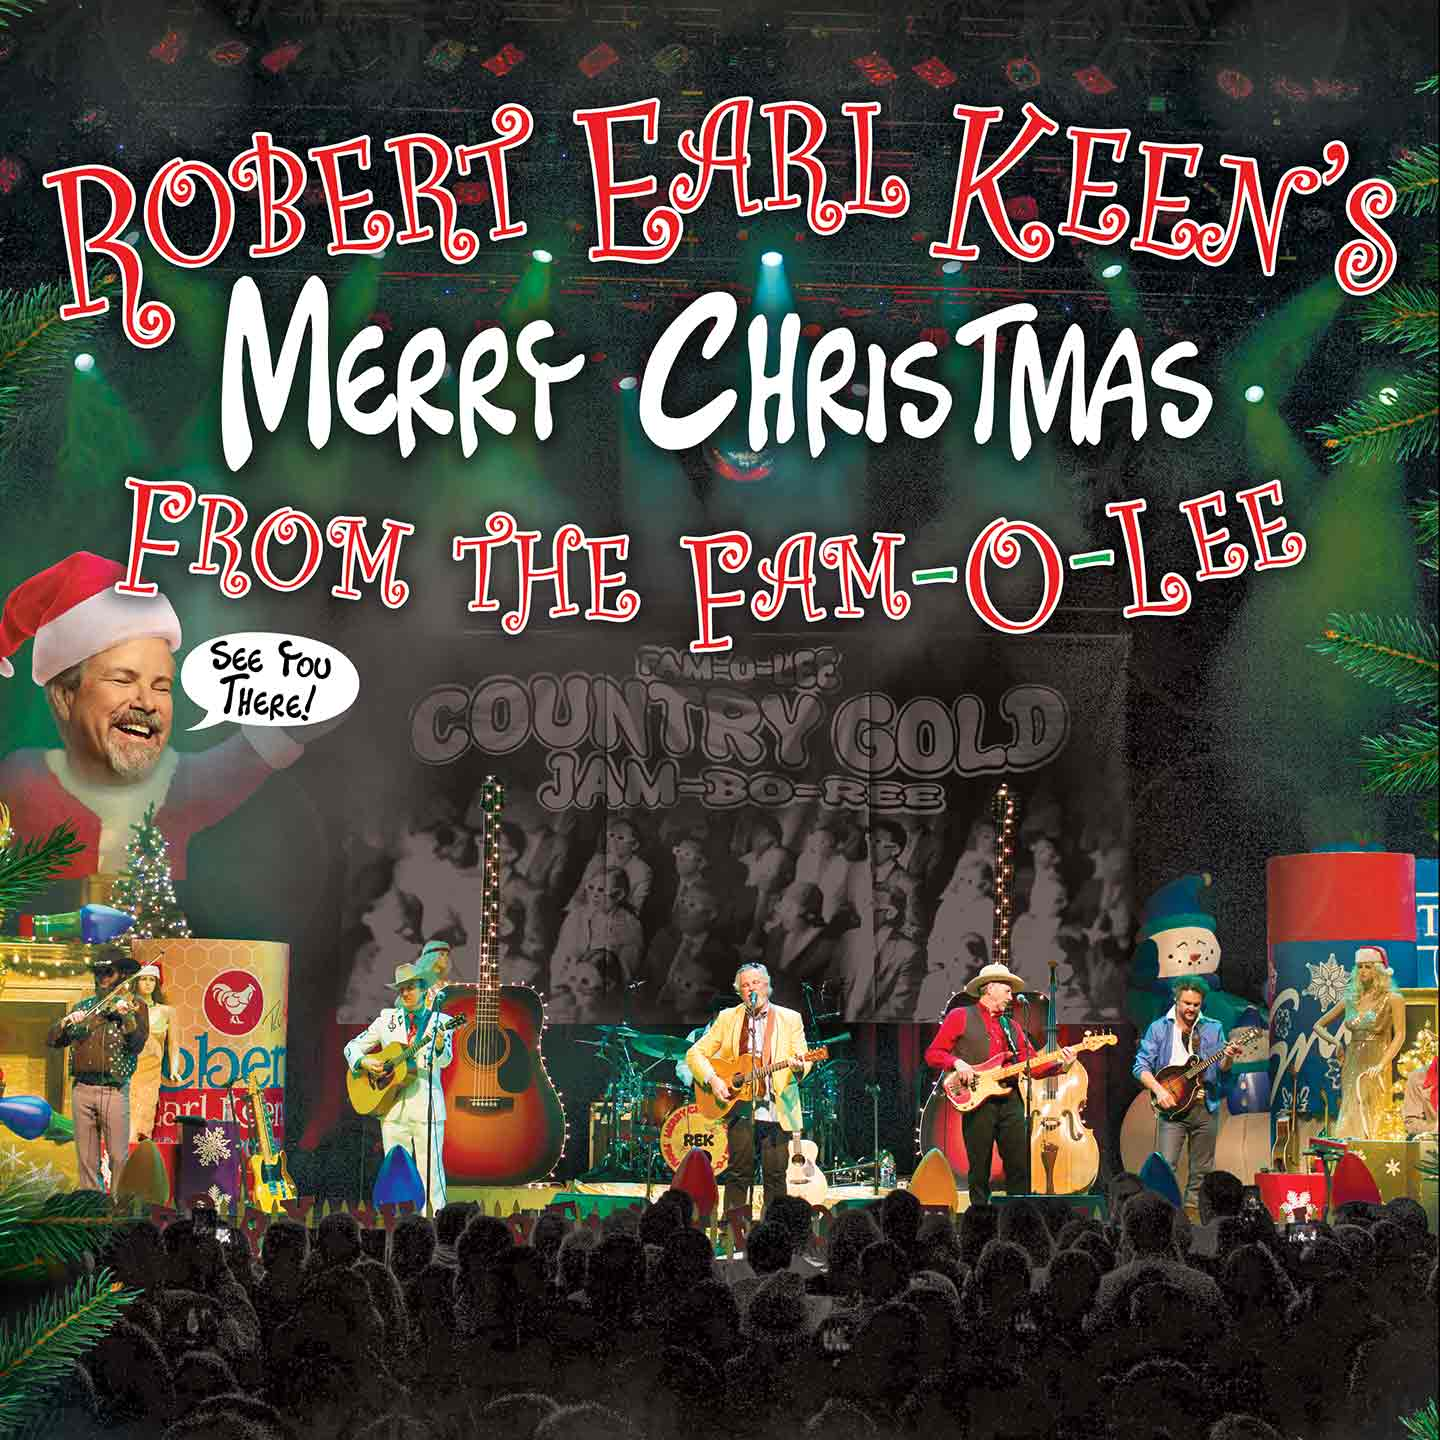 robert earl keens merry christmas from the fam o lee show